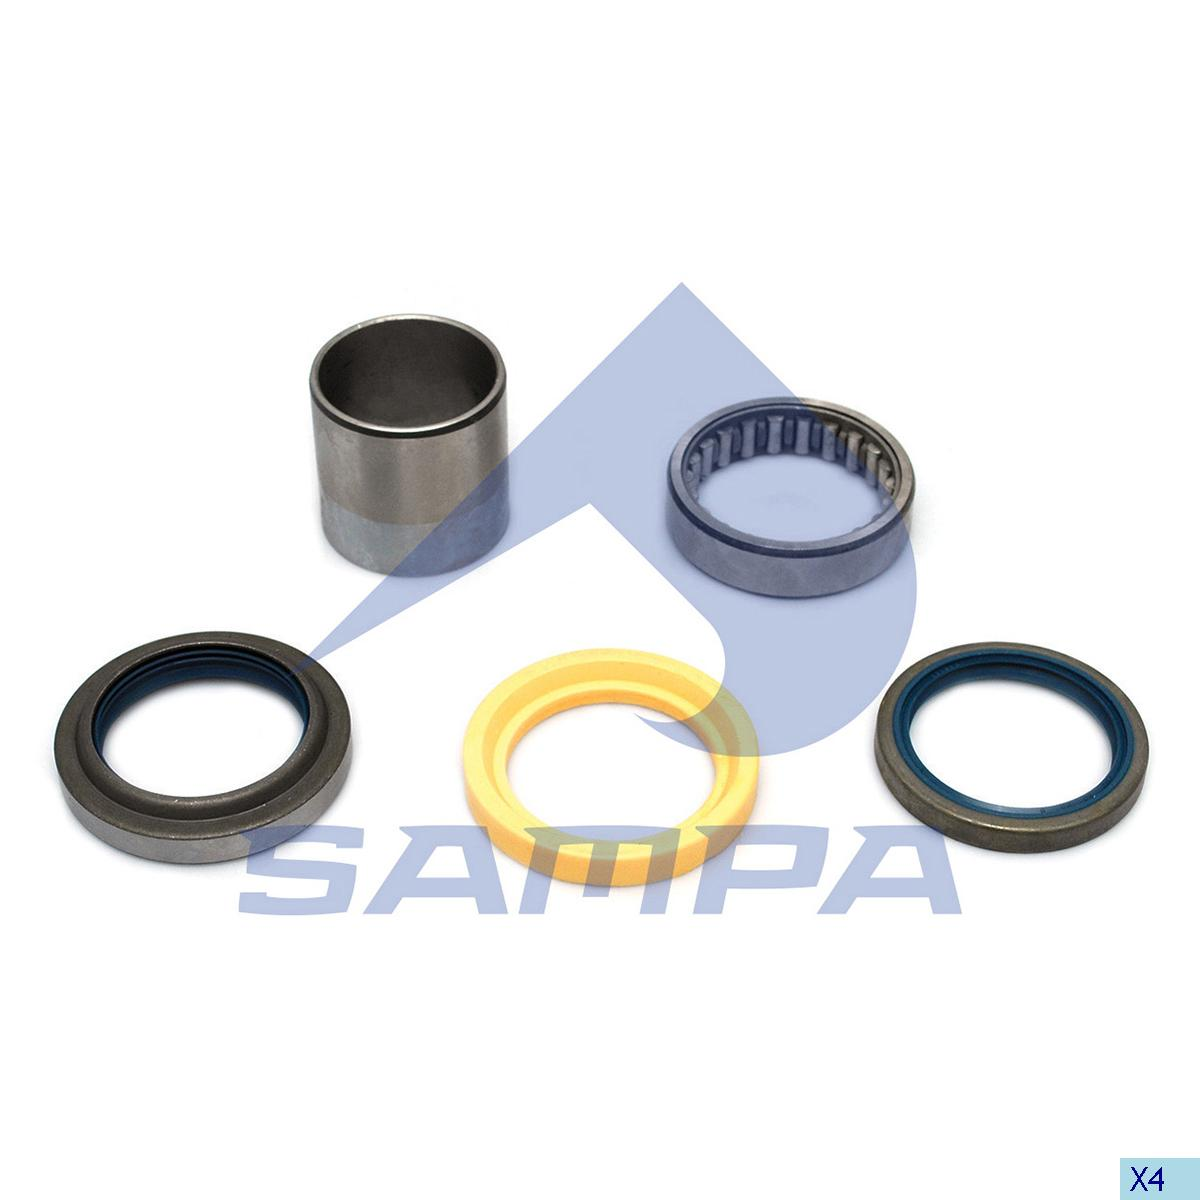 Repair Kit, Drive Shaft, Mercedes, Power Unit